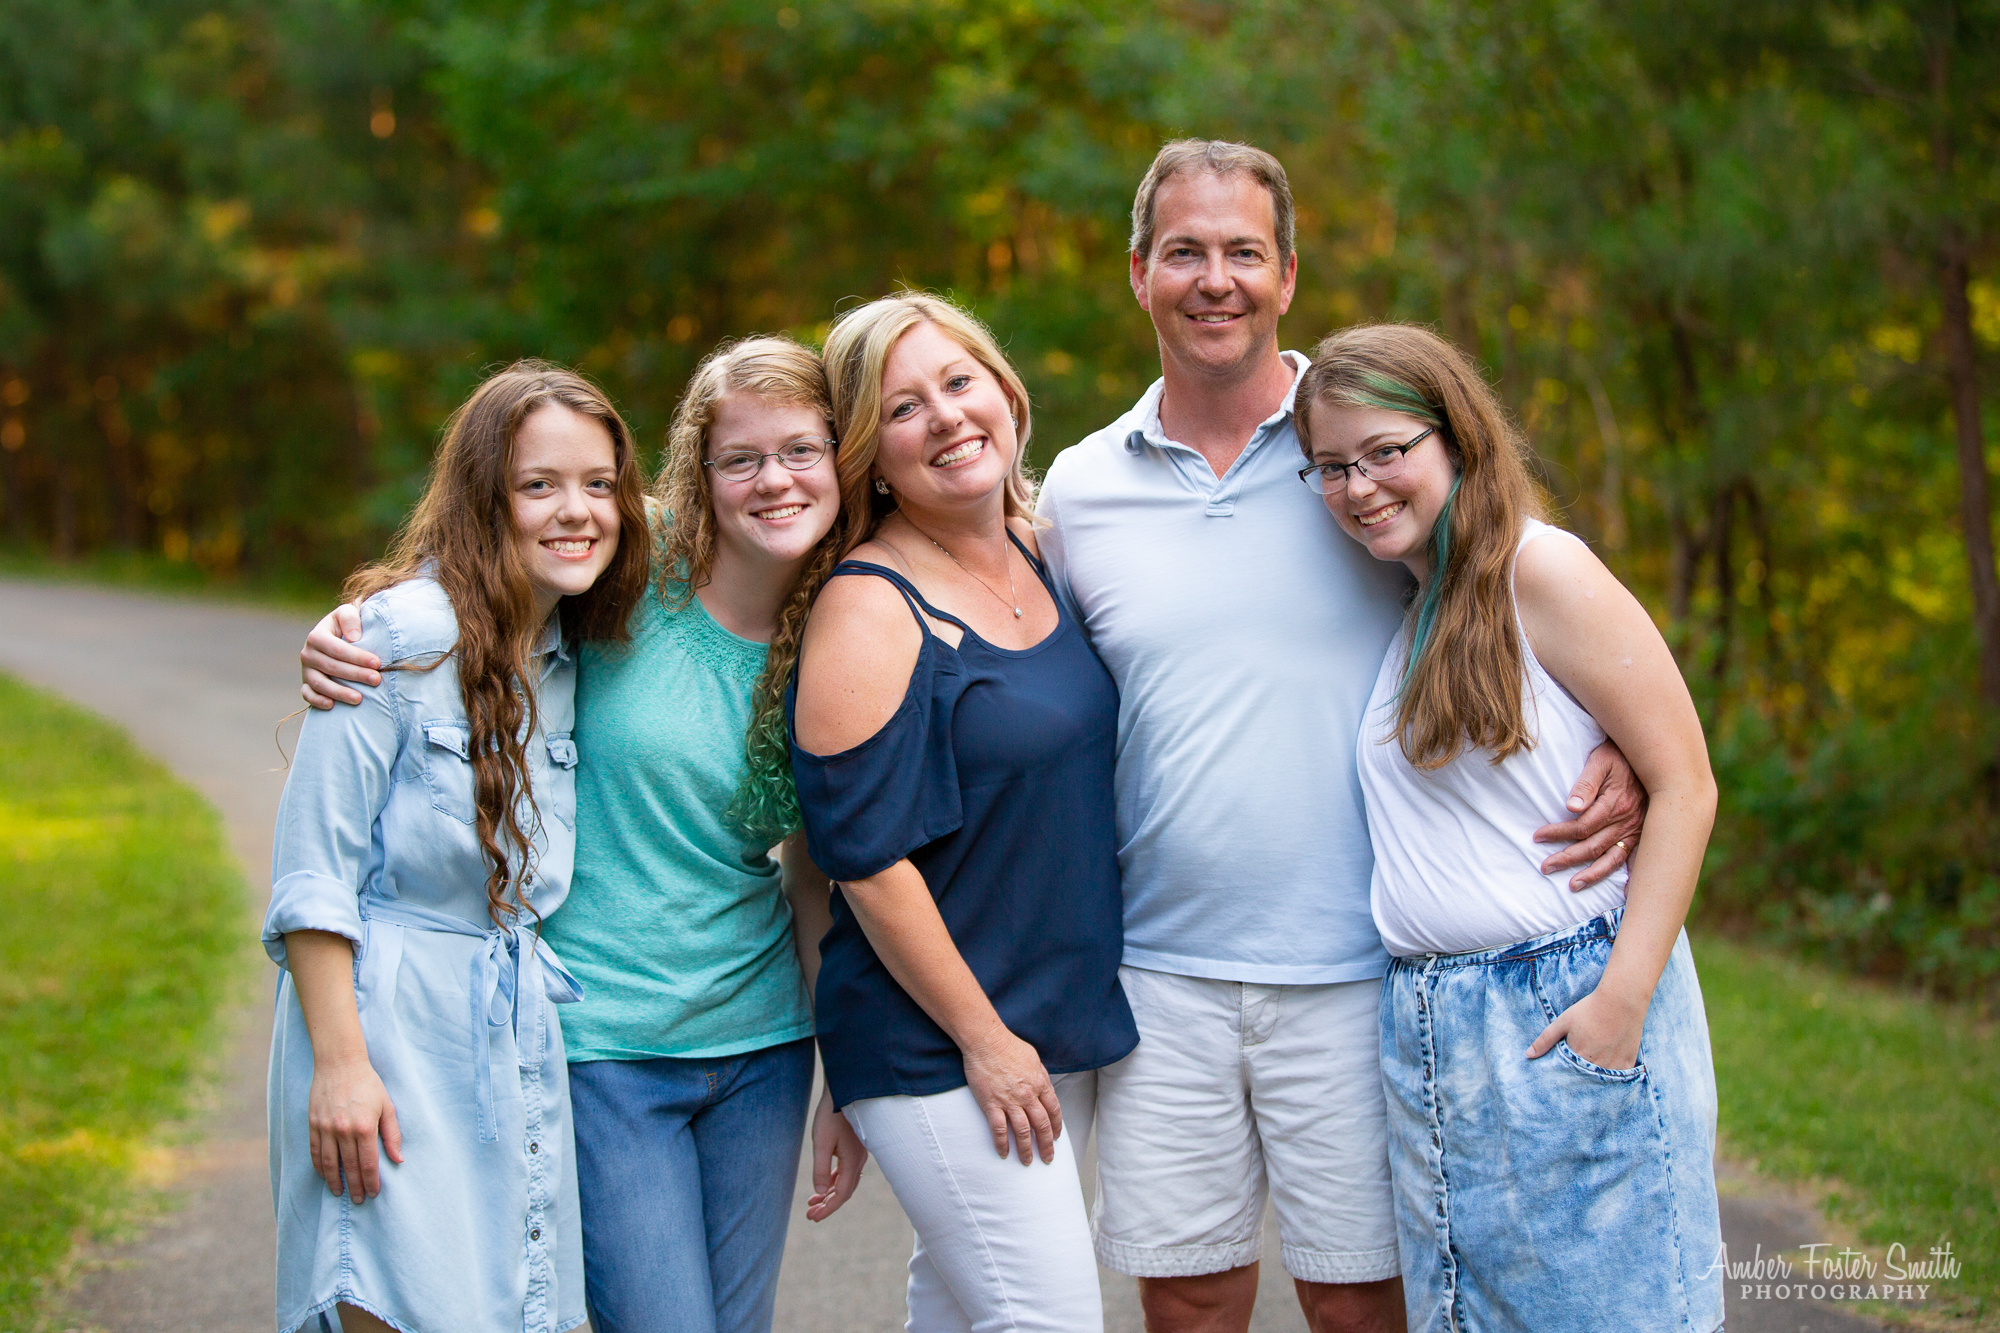 Amber Foster Smith Photography - Holly Springs Family Photographer